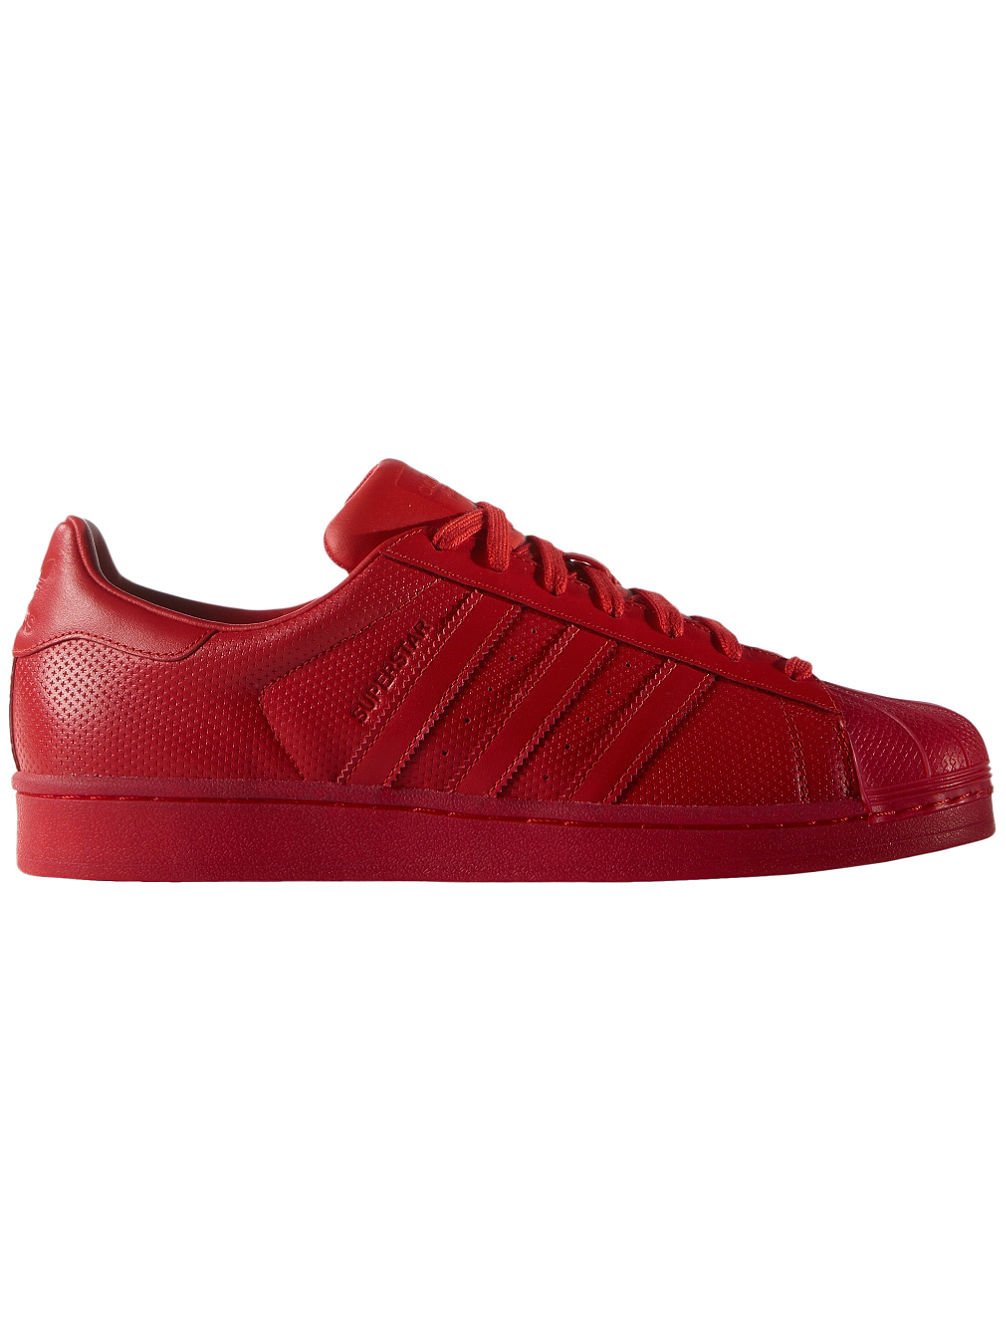 Superstar Adidas Superstar Frauen Adidas Originals Superstar Ii